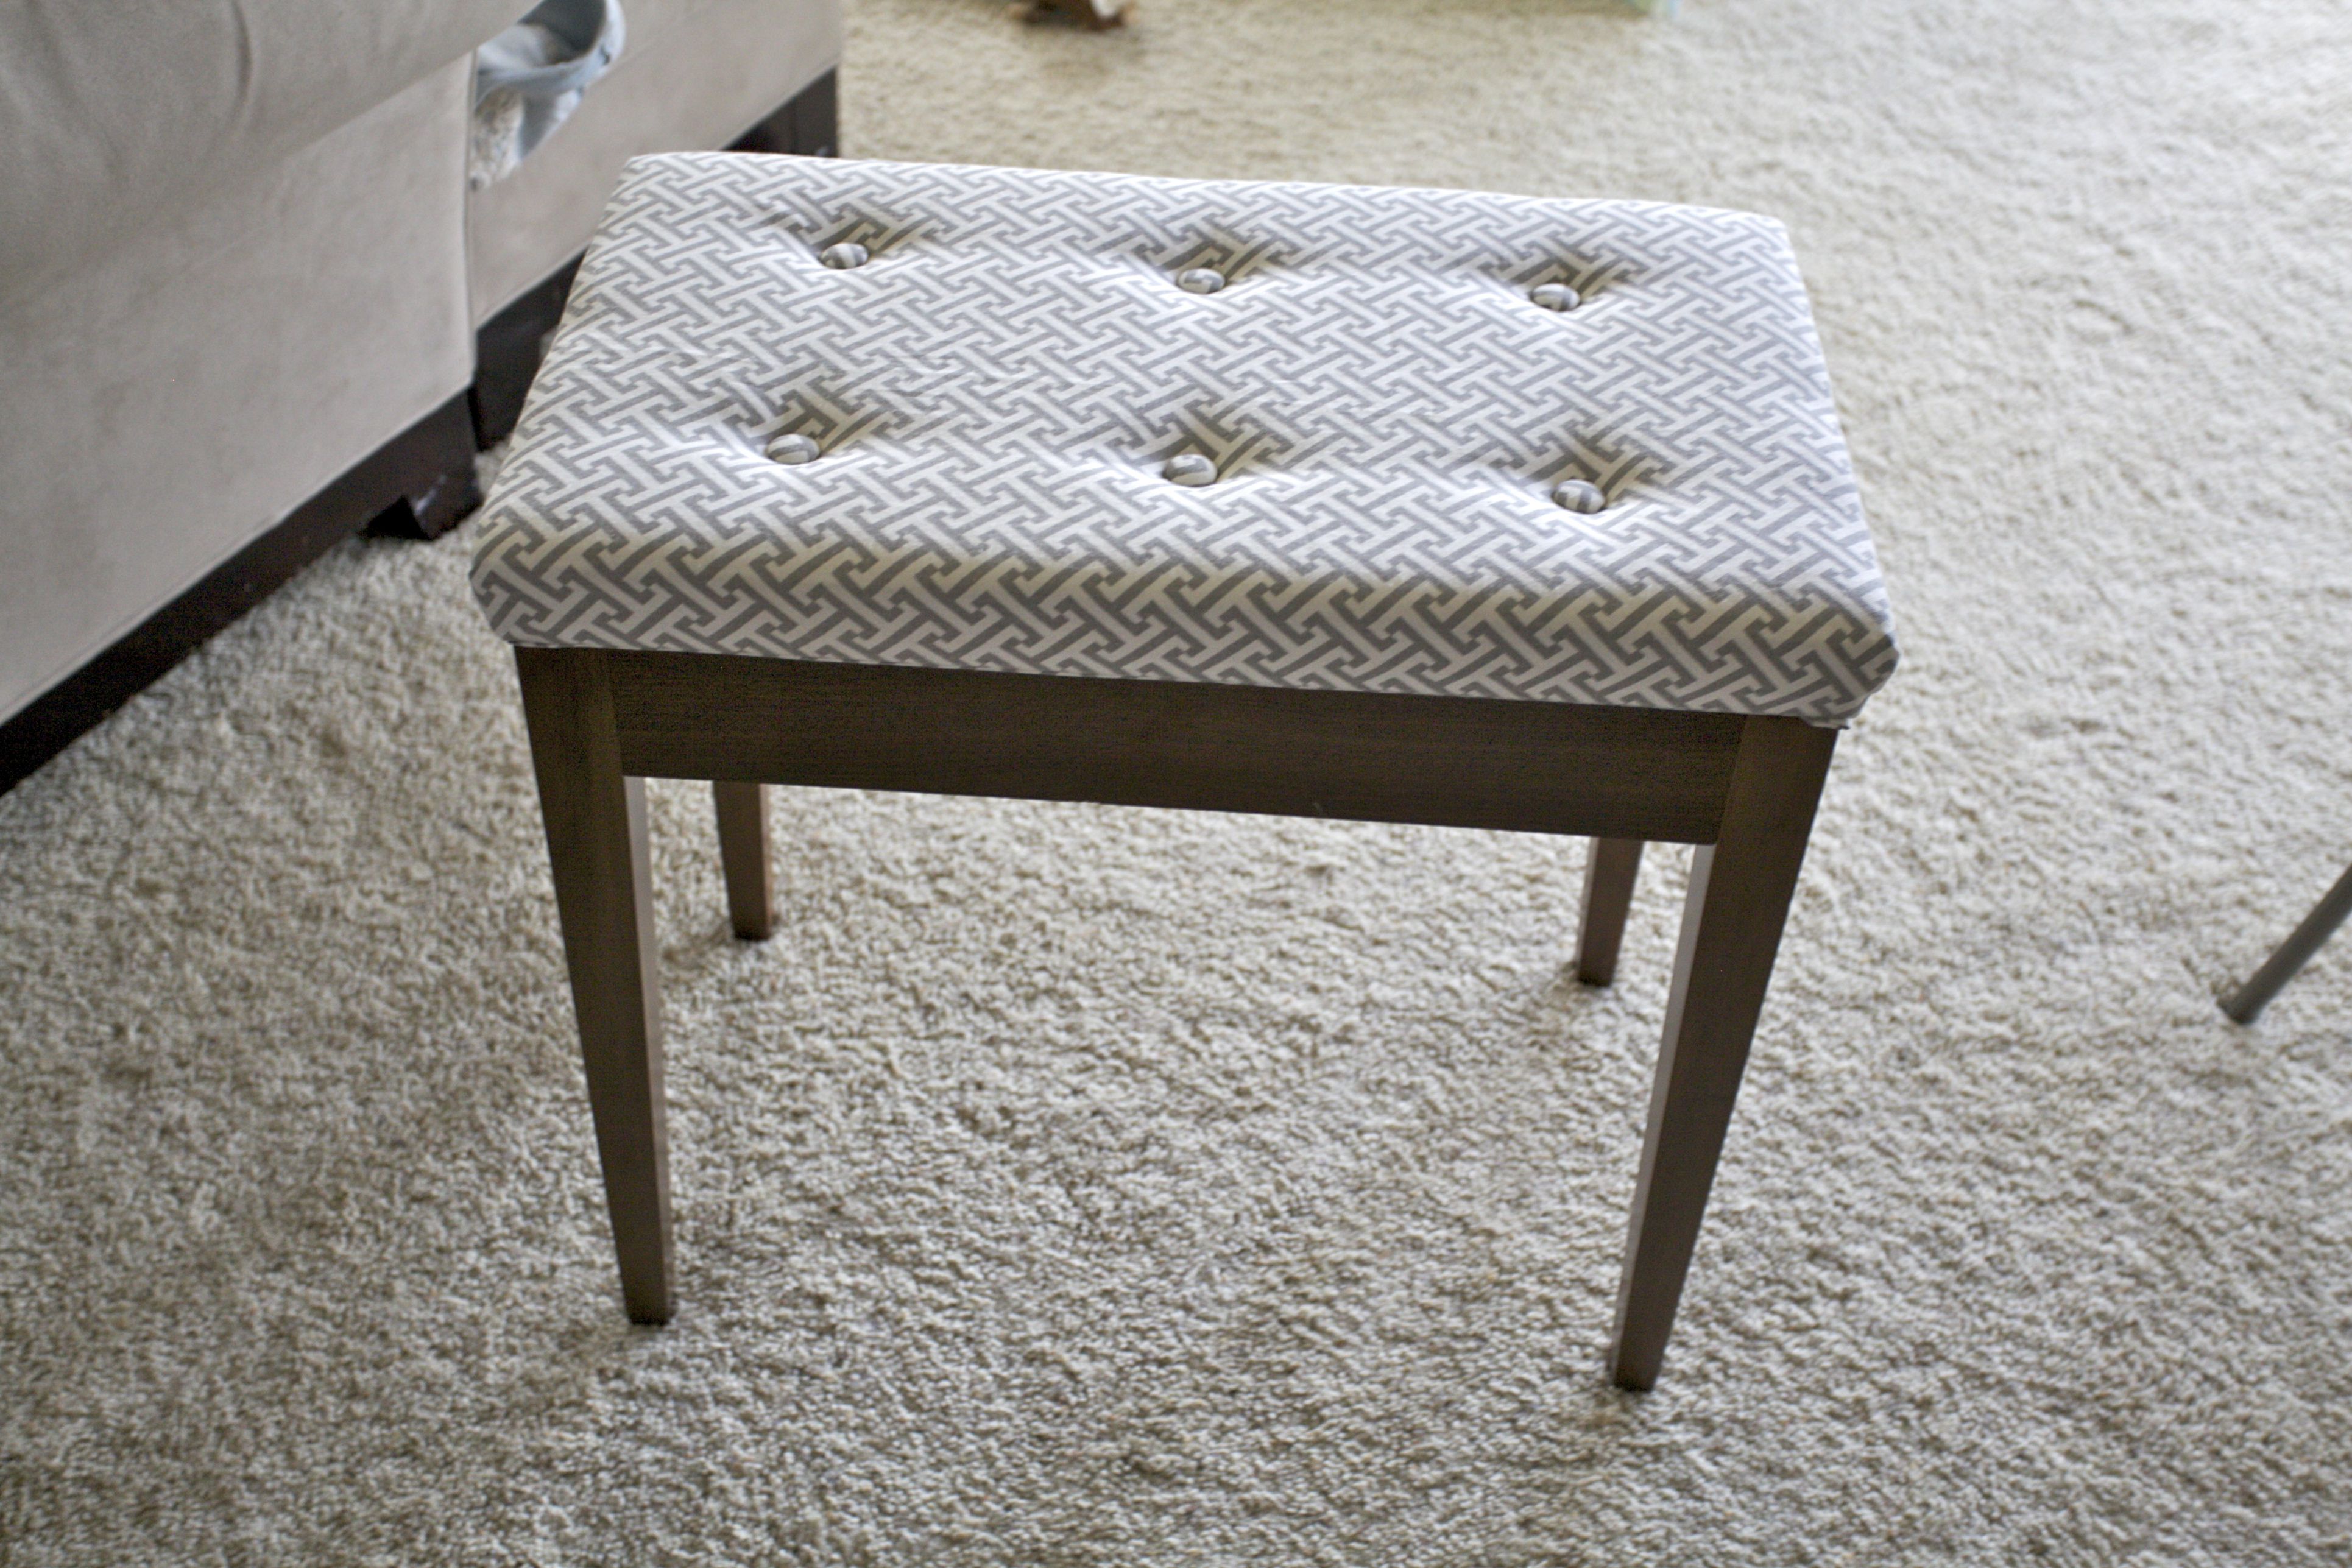 Foyer Hallway Kit : Build how to a entryway bench with storage diy